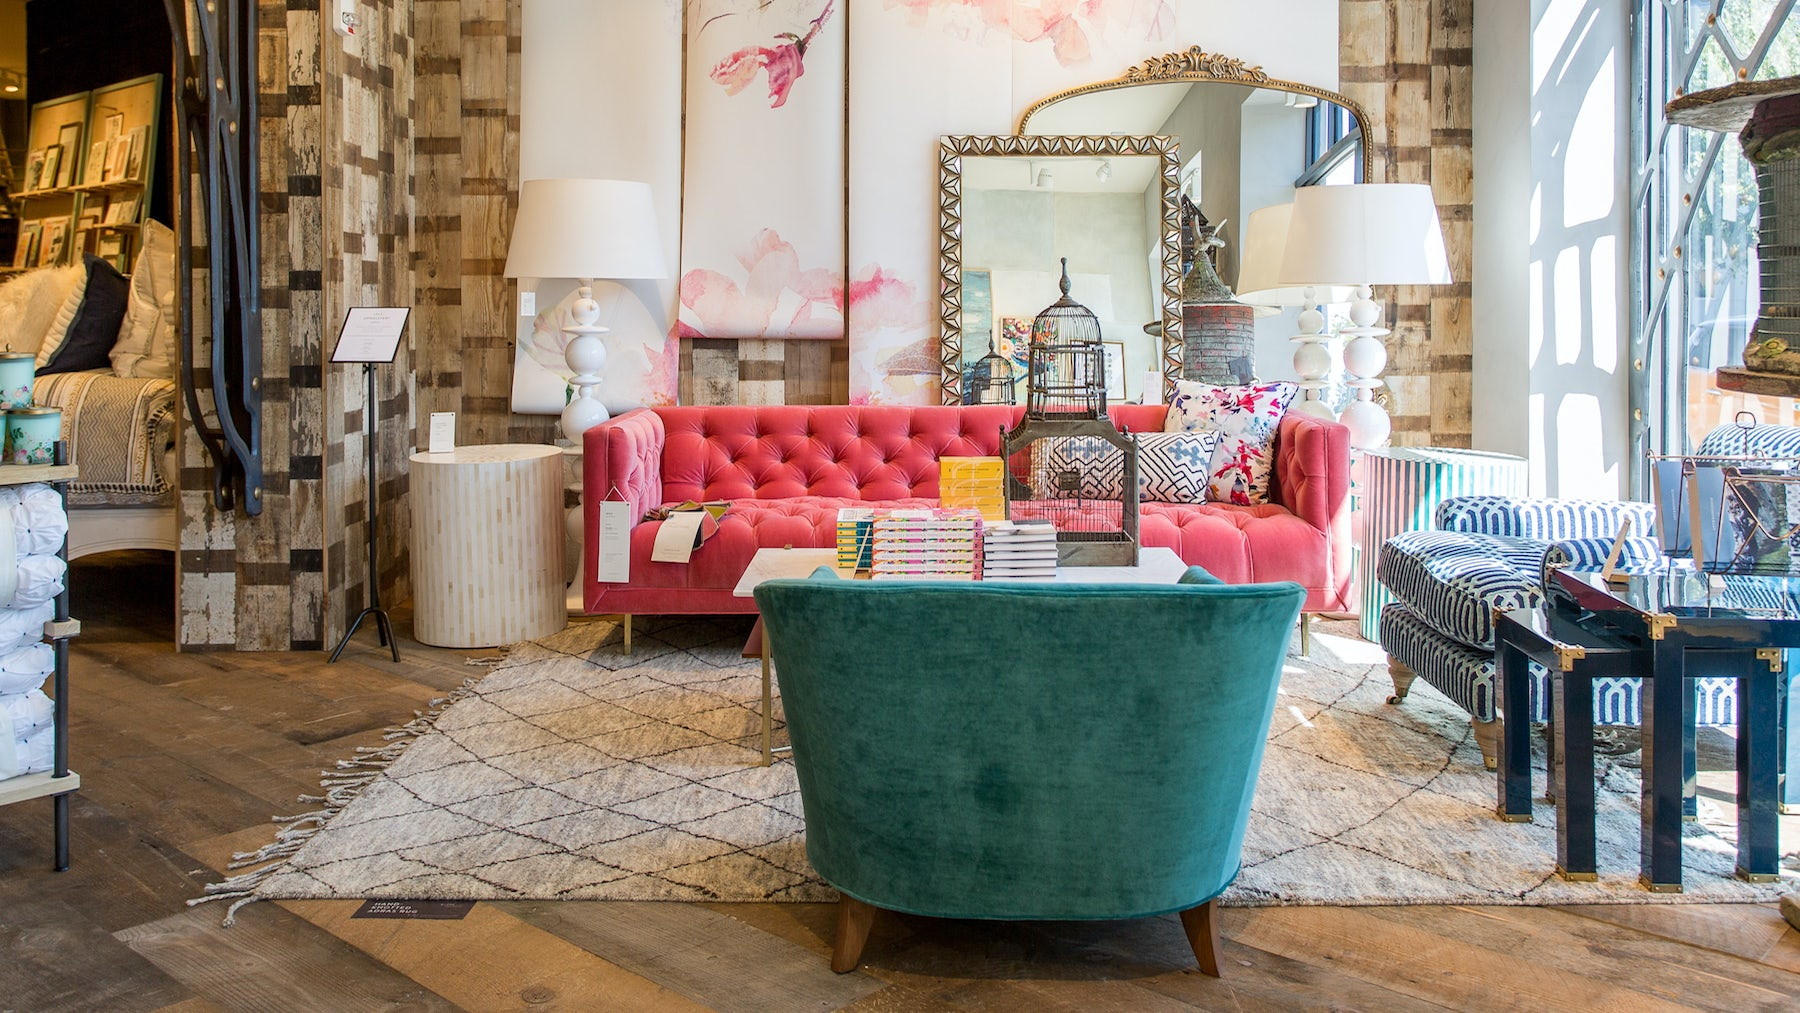 Inside Anthropologie & Co's Walnut Creek, California 30,000-square-foot superstore. | Source: Courtesy